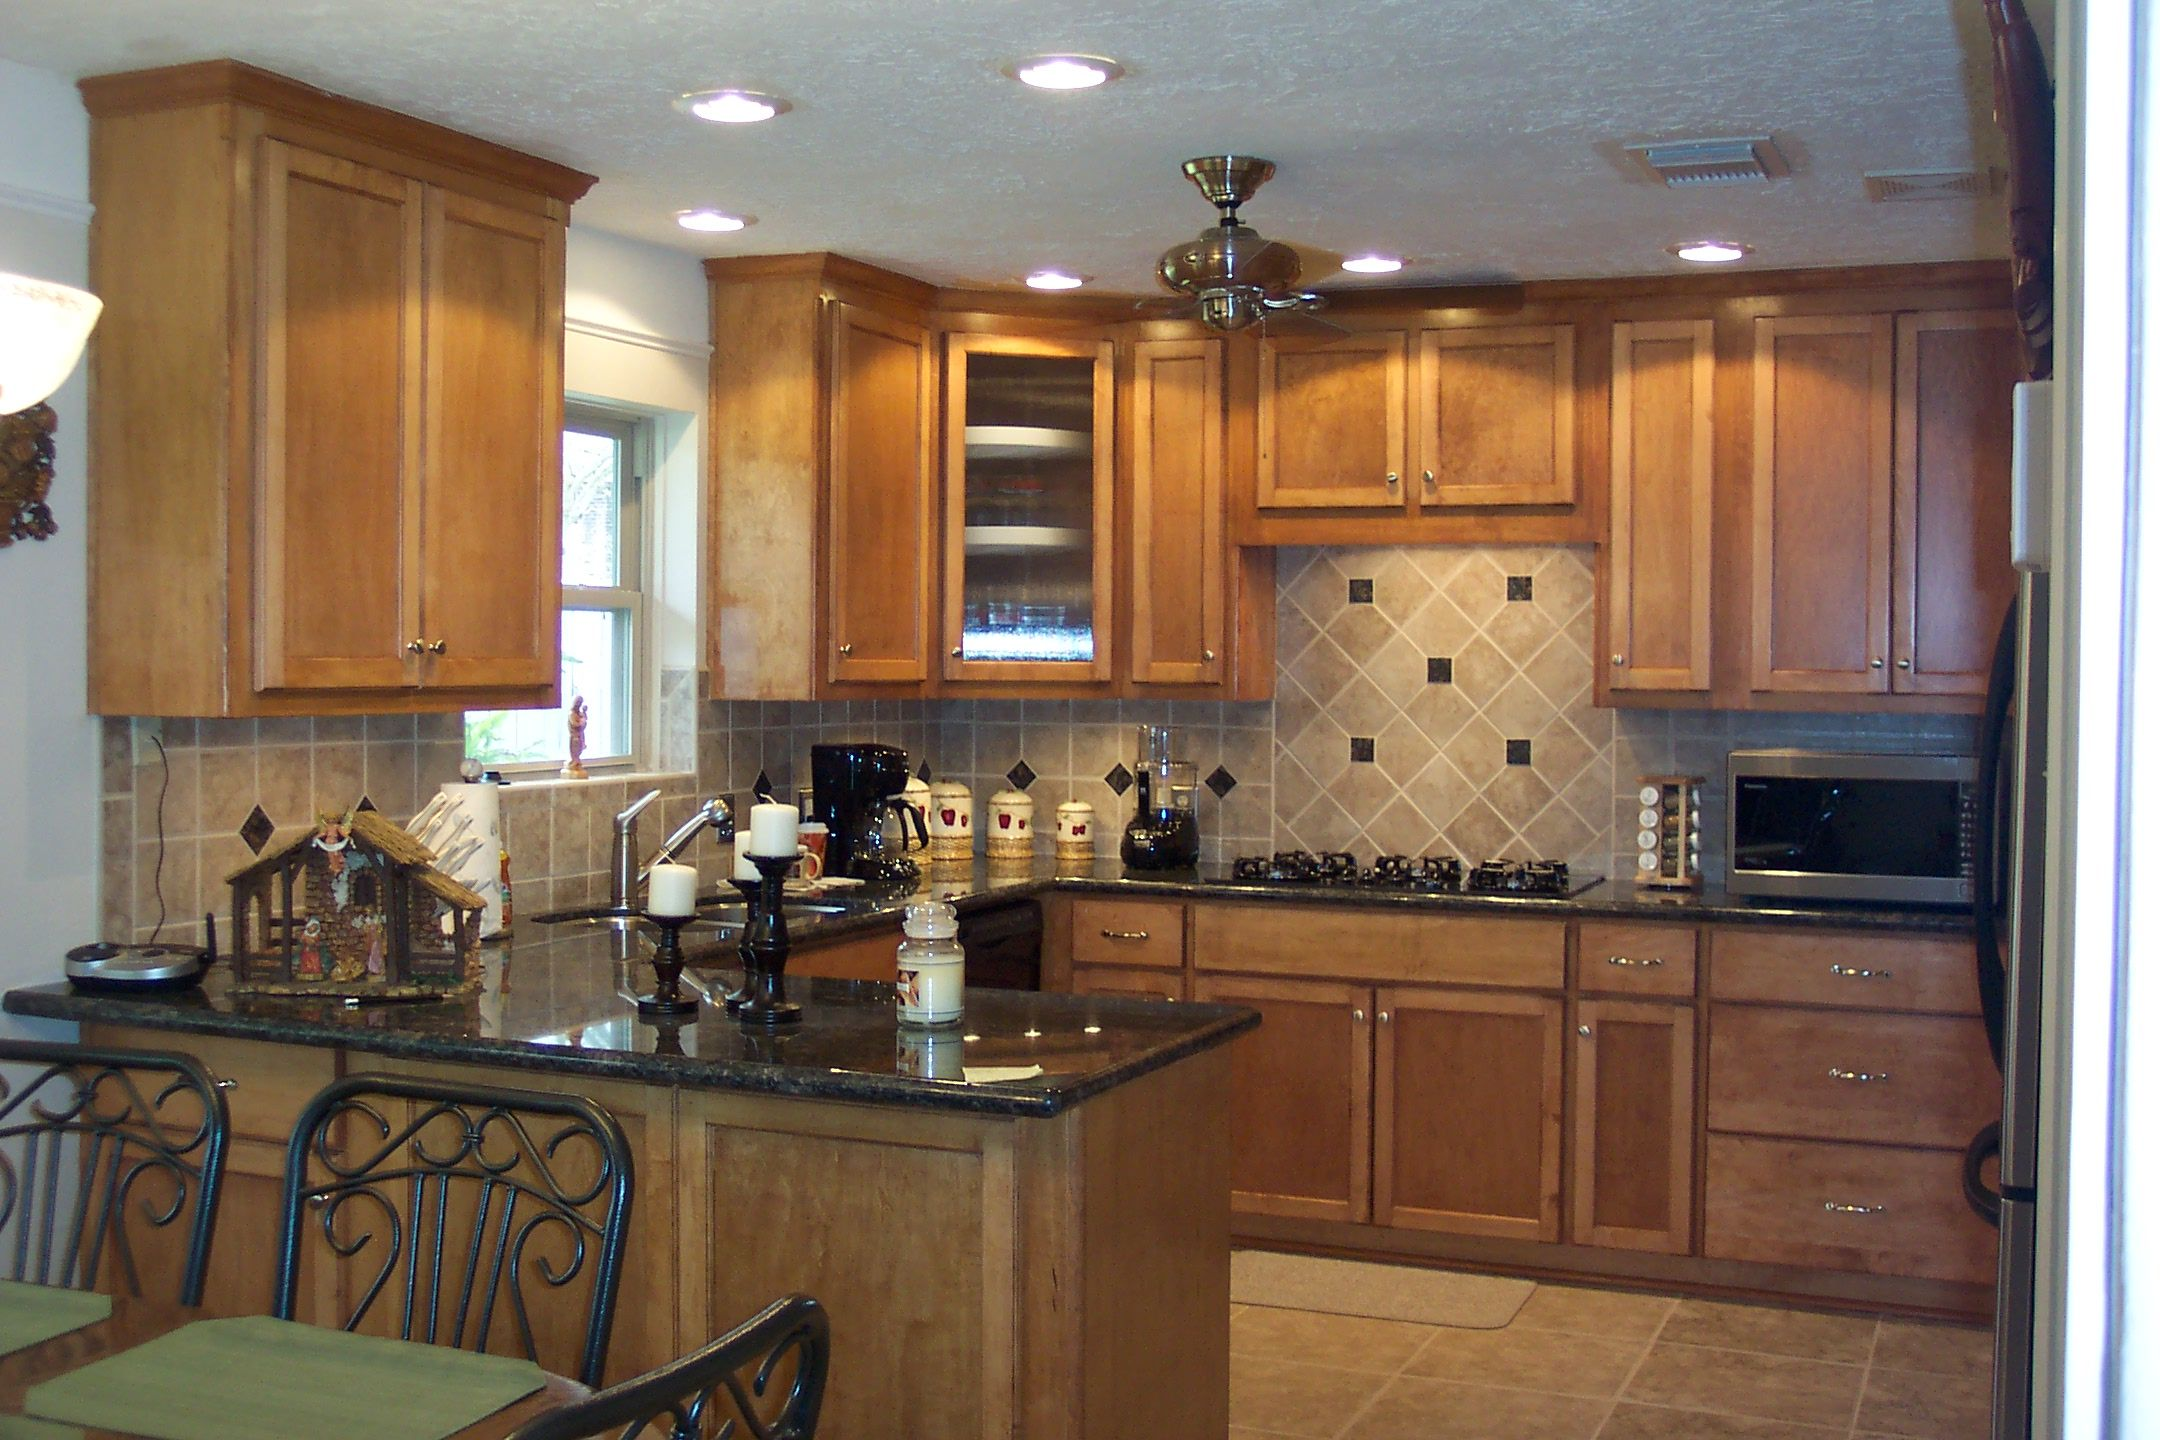 Small Kitchens On a Budget » Home Design Ideas » Kitchen